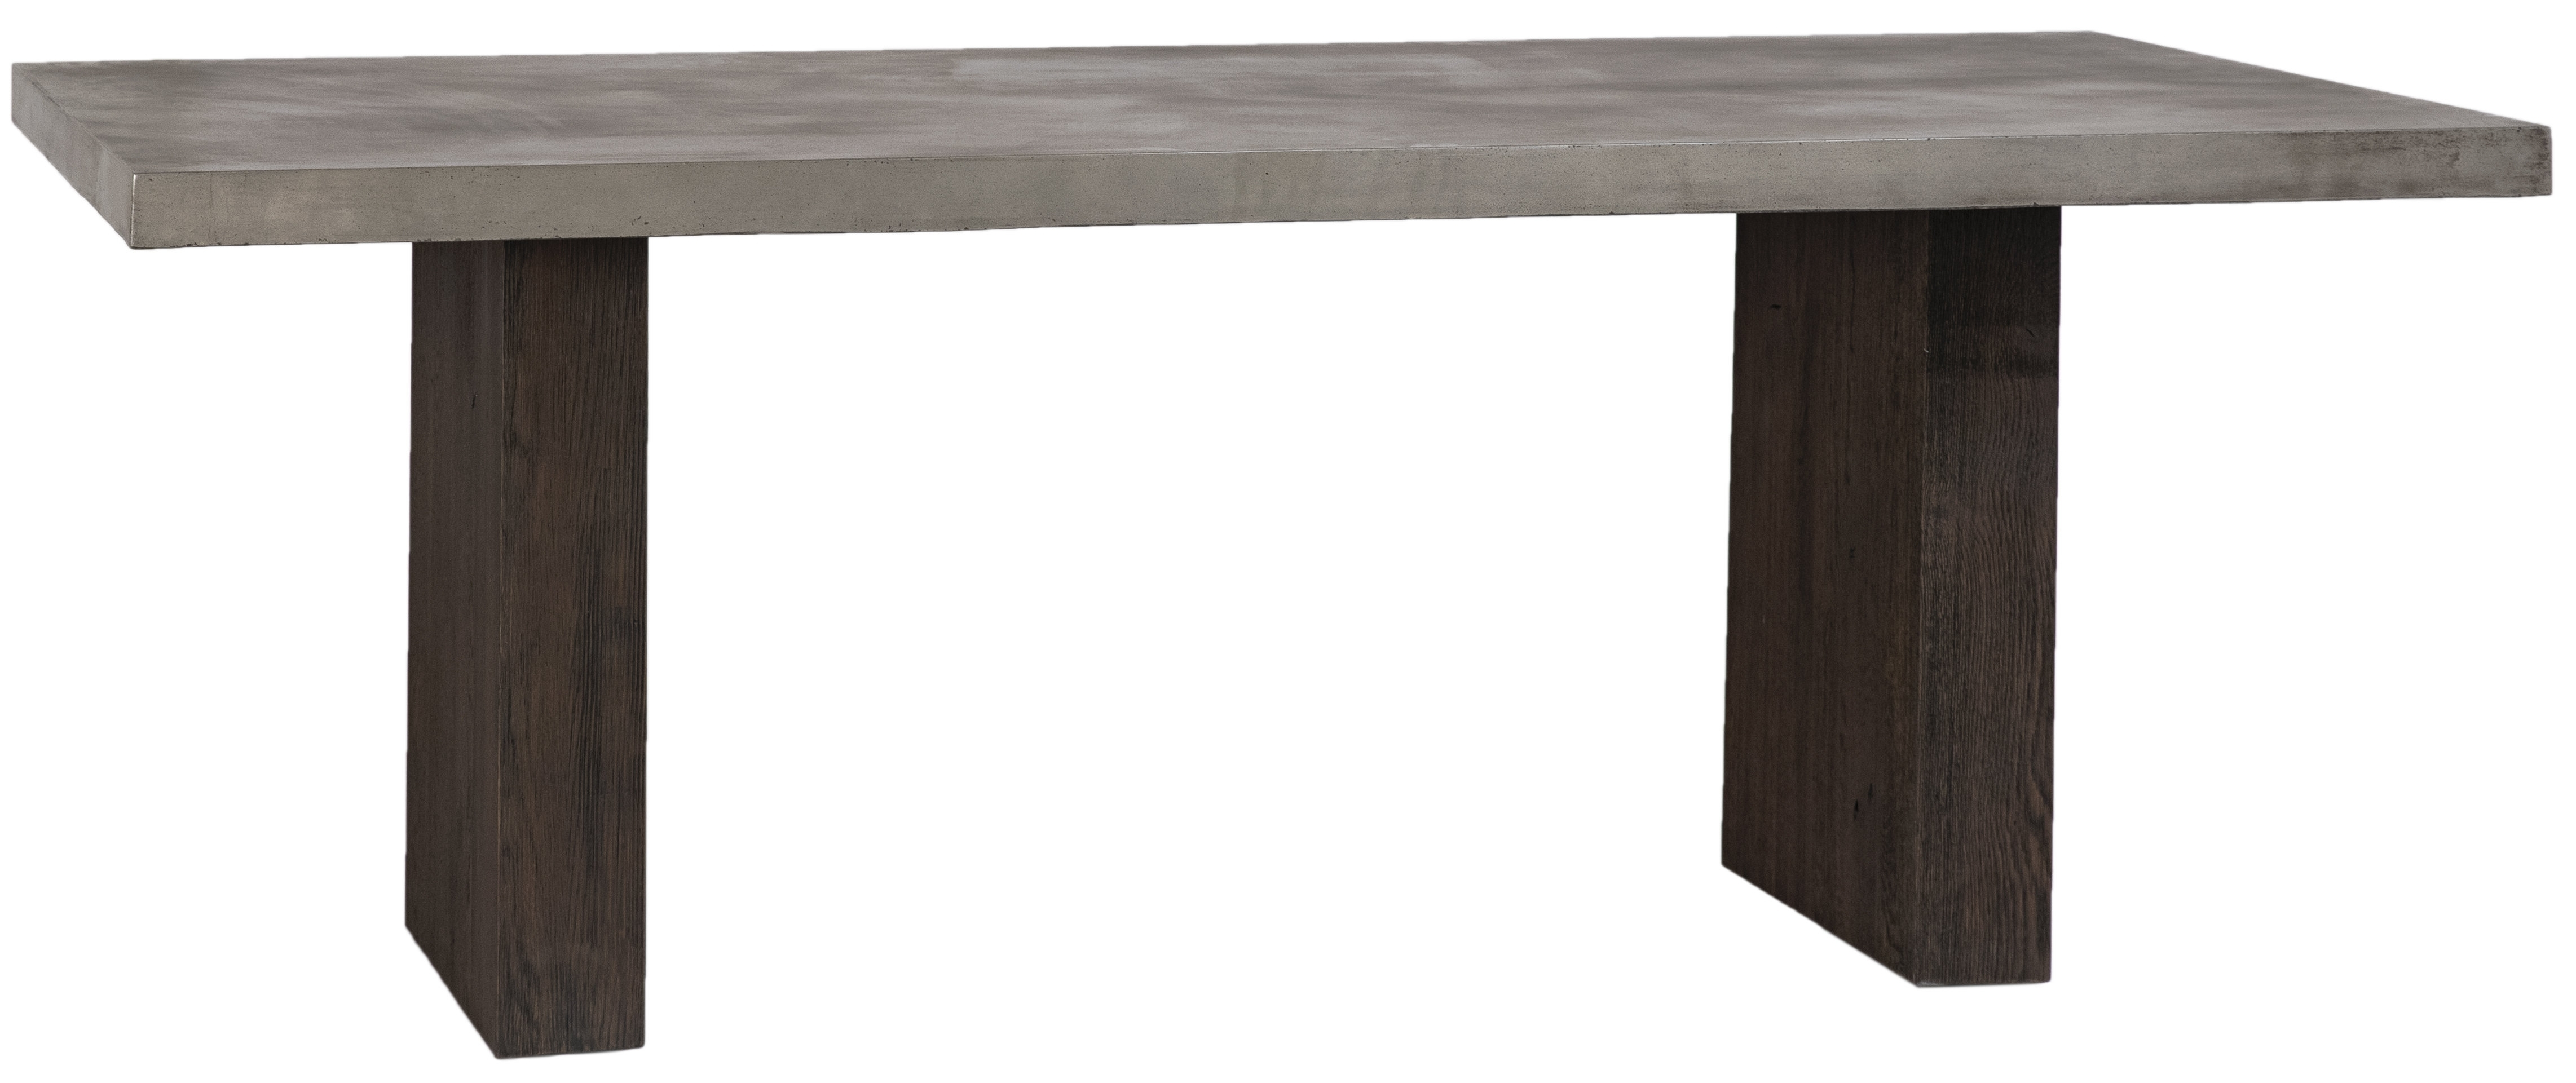 Tipton & Tate Norwood Dining Table | Wayfair Pertaining To Latest Norwood Rectangle Extension Dining Tables (Image 17 of 20)